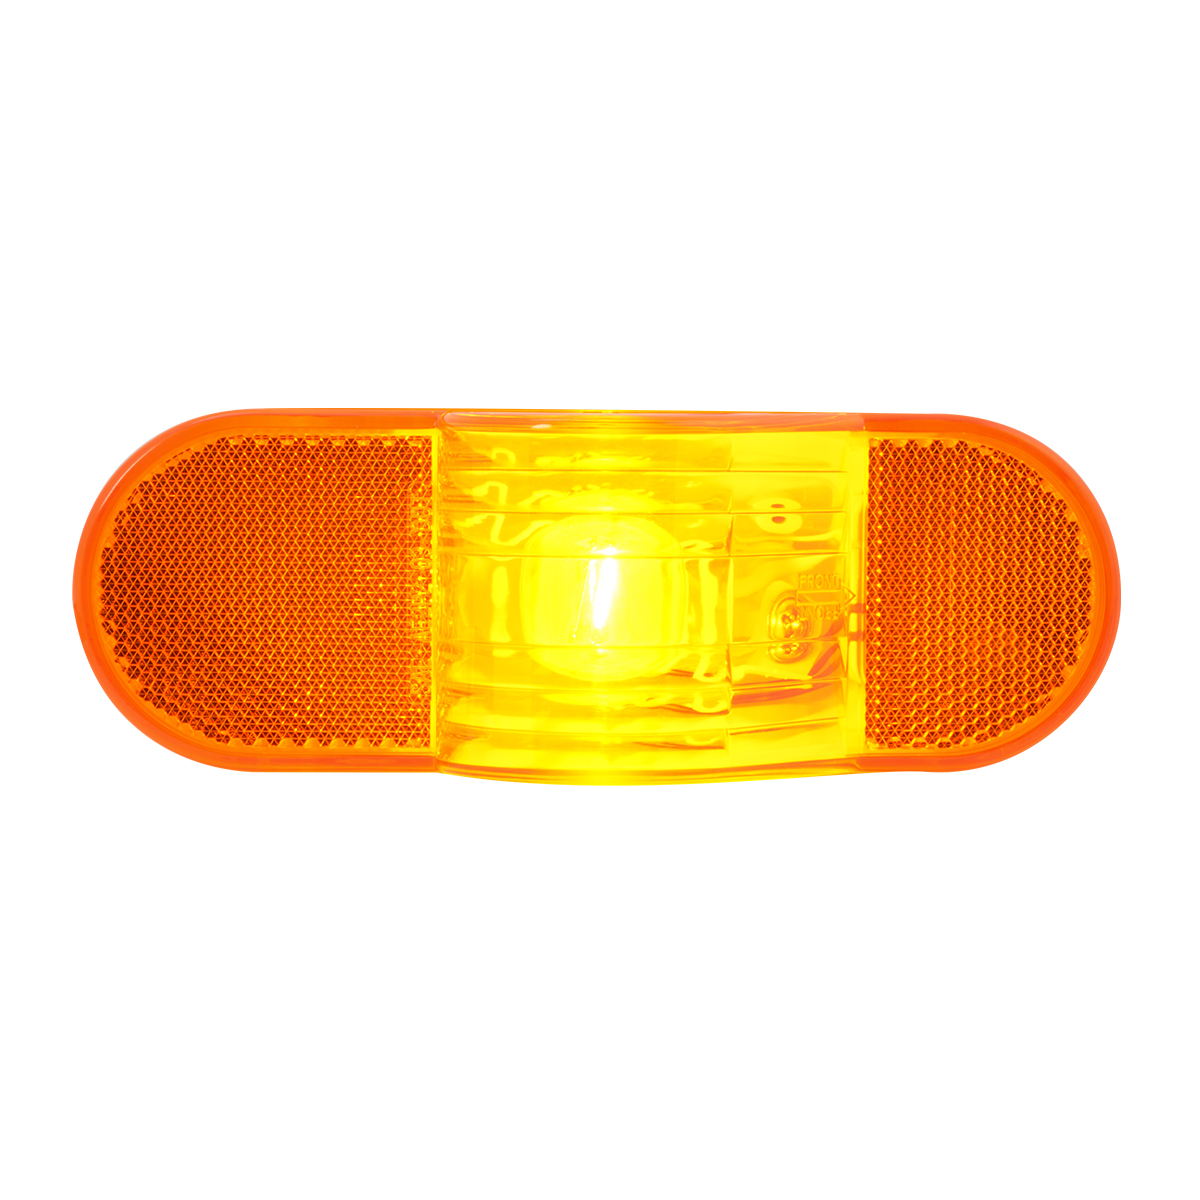 #80703 Oval Side Turn and Marker Light with Reflector - Amber Lens Only